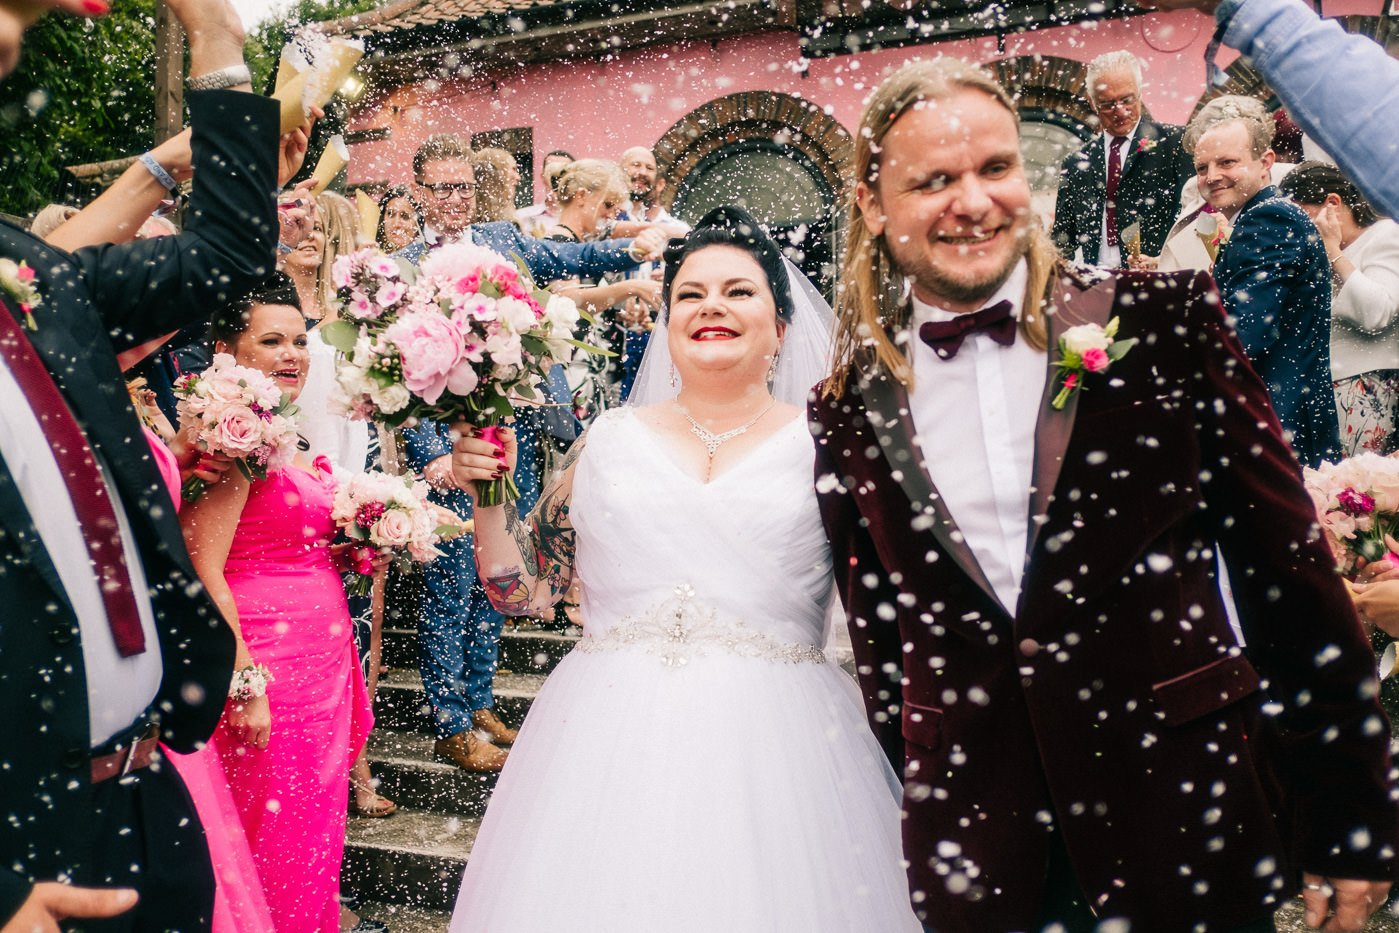 Snow confetti alternative rock venue wedding